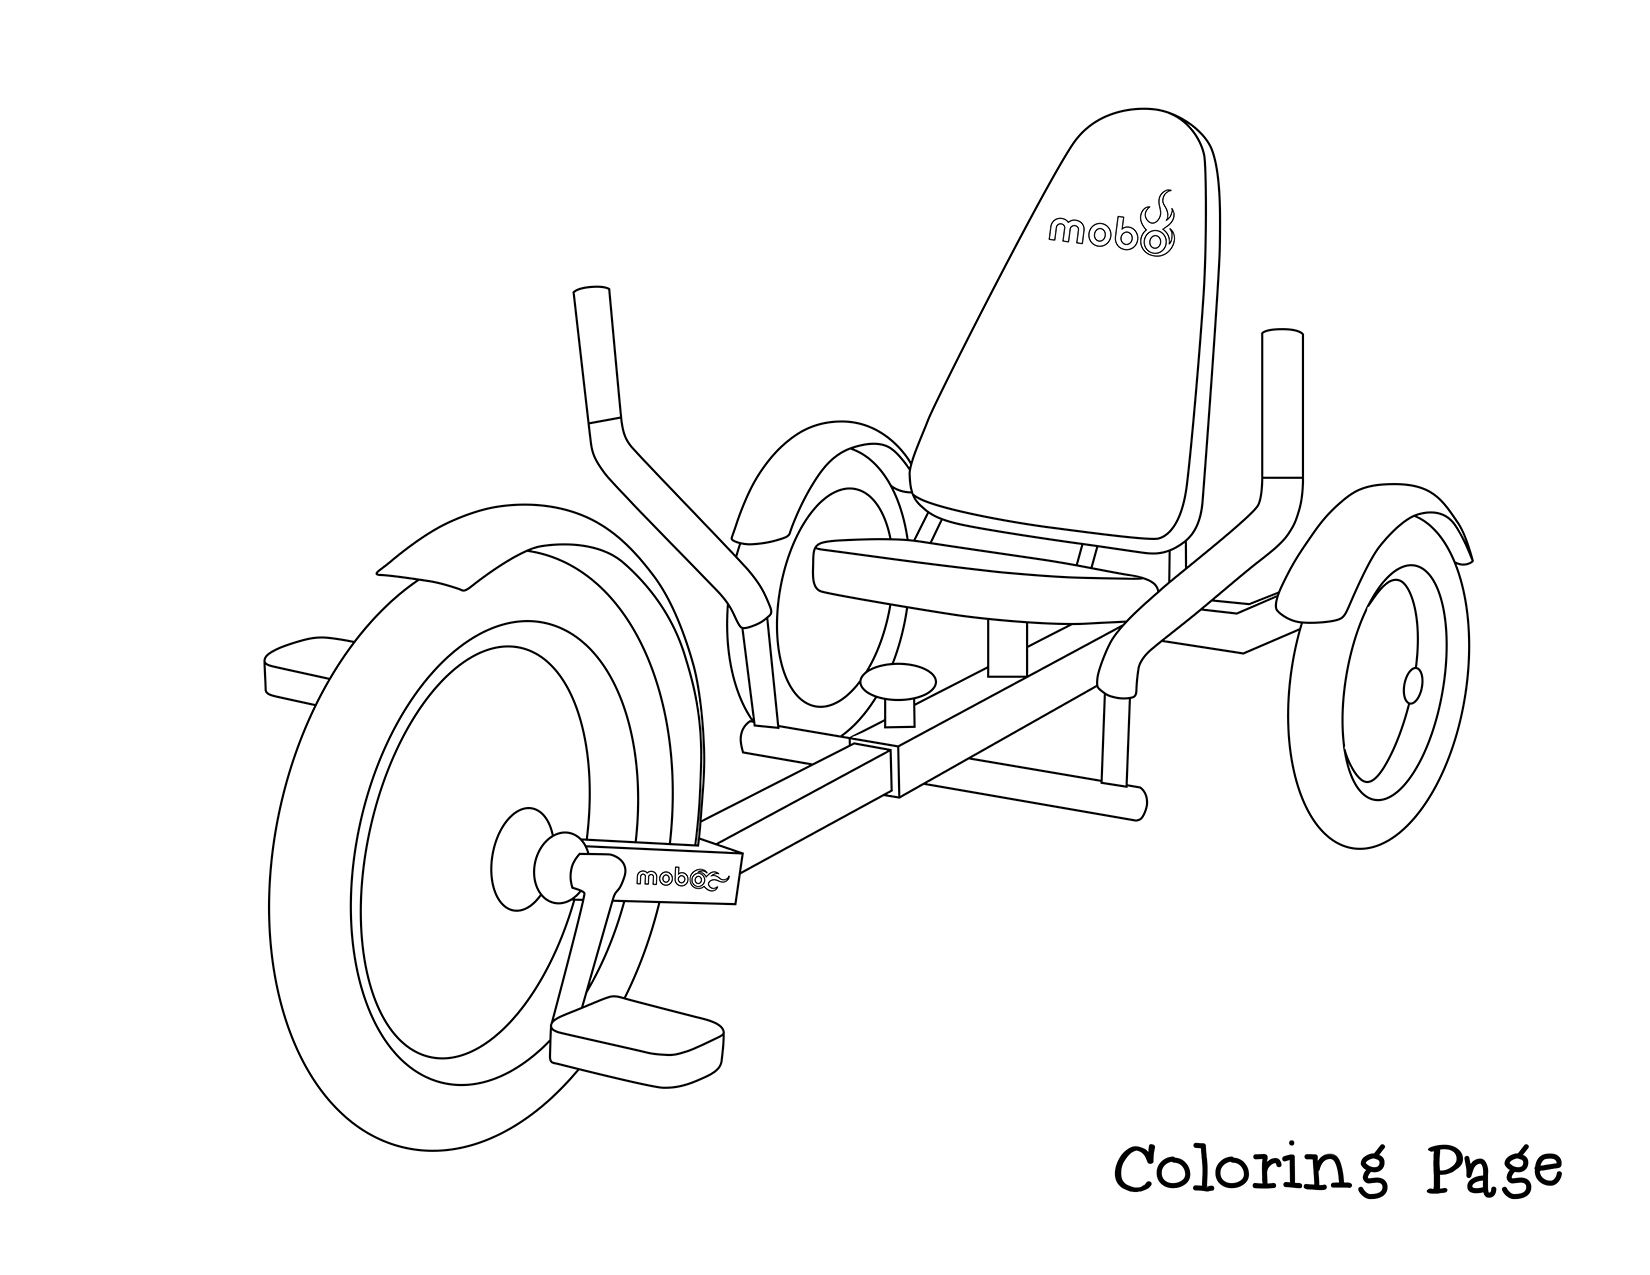 Tricycle Coloring Book Page For Boredom Therapy Design Your Own